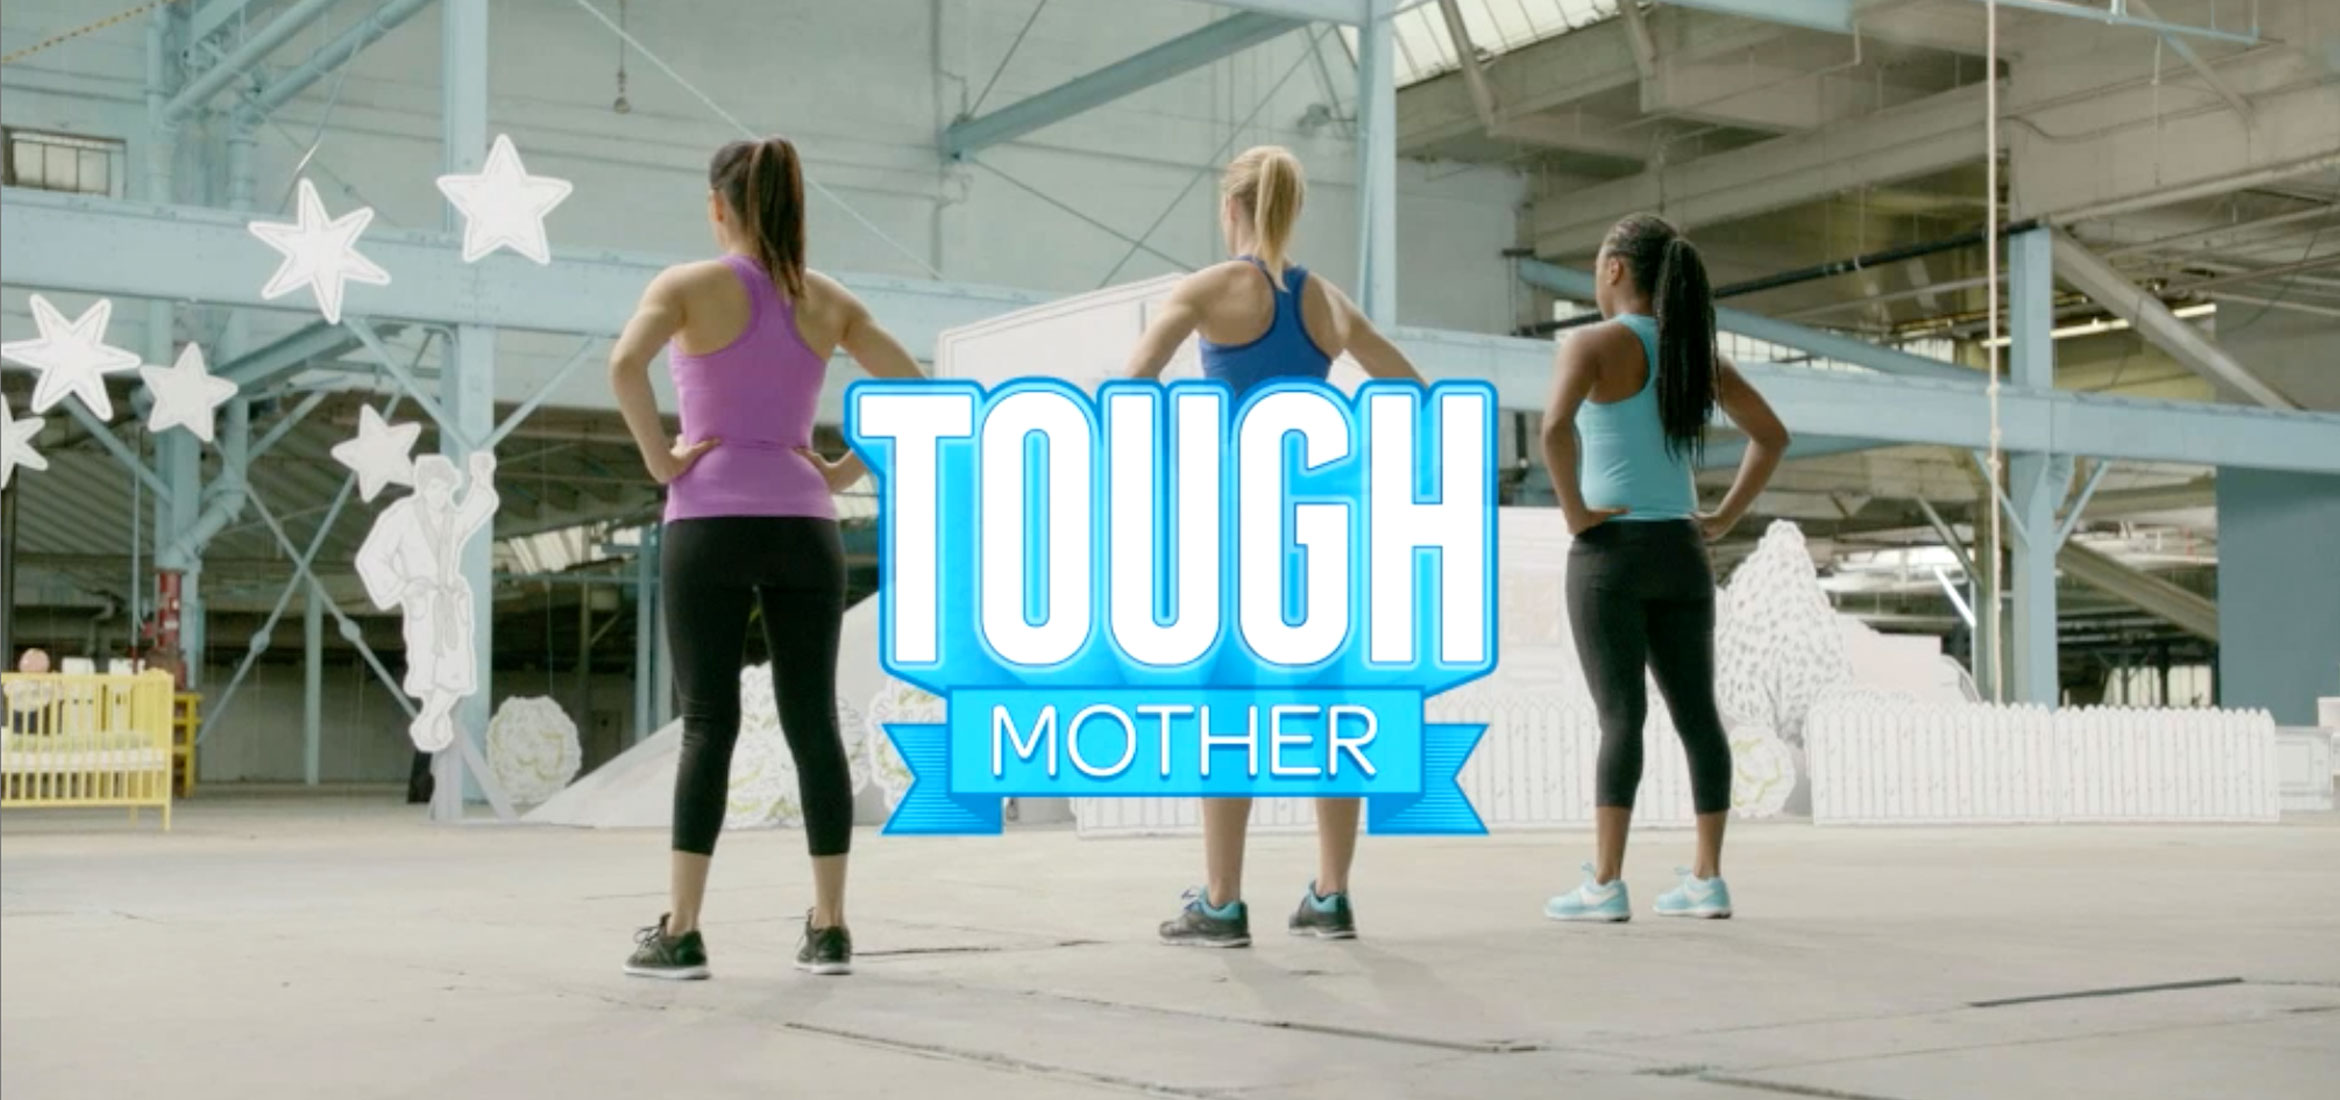 Nine Obstacles. Three Challengers.One Tough Mother